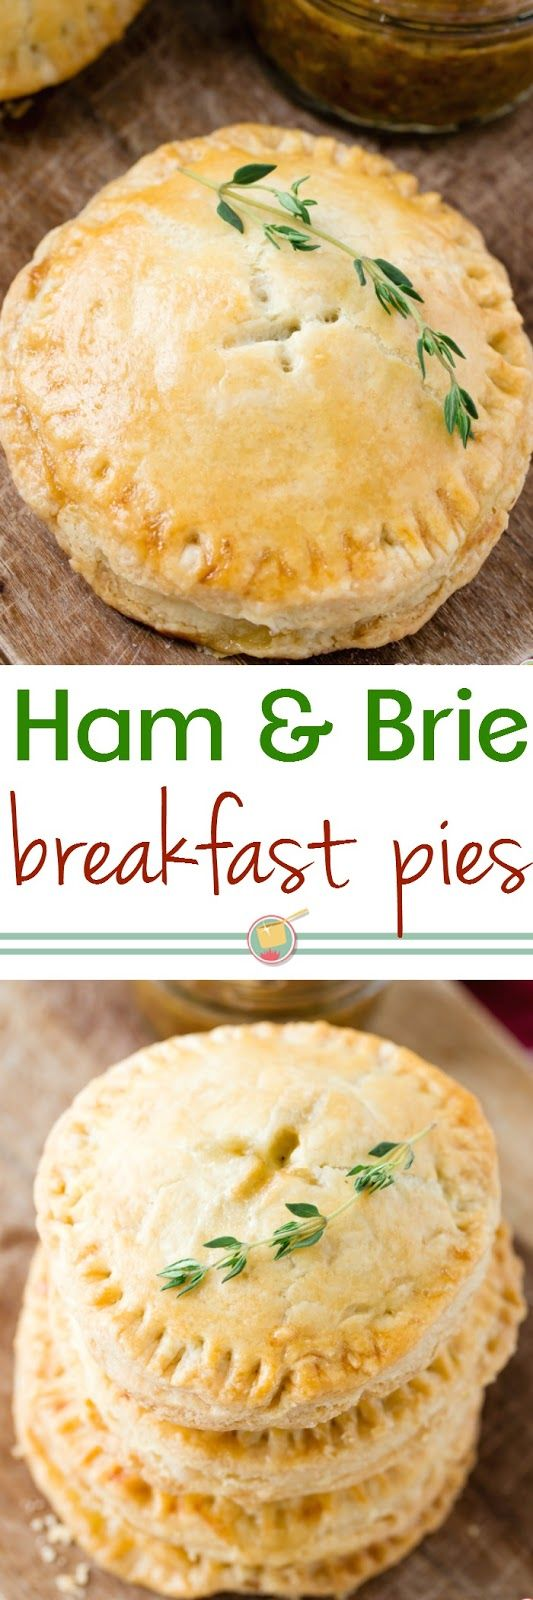 Now you can have pie for breakfast with these Ham and Brie Hand Pies with a tangy fig jam and stone ground mustard spread!